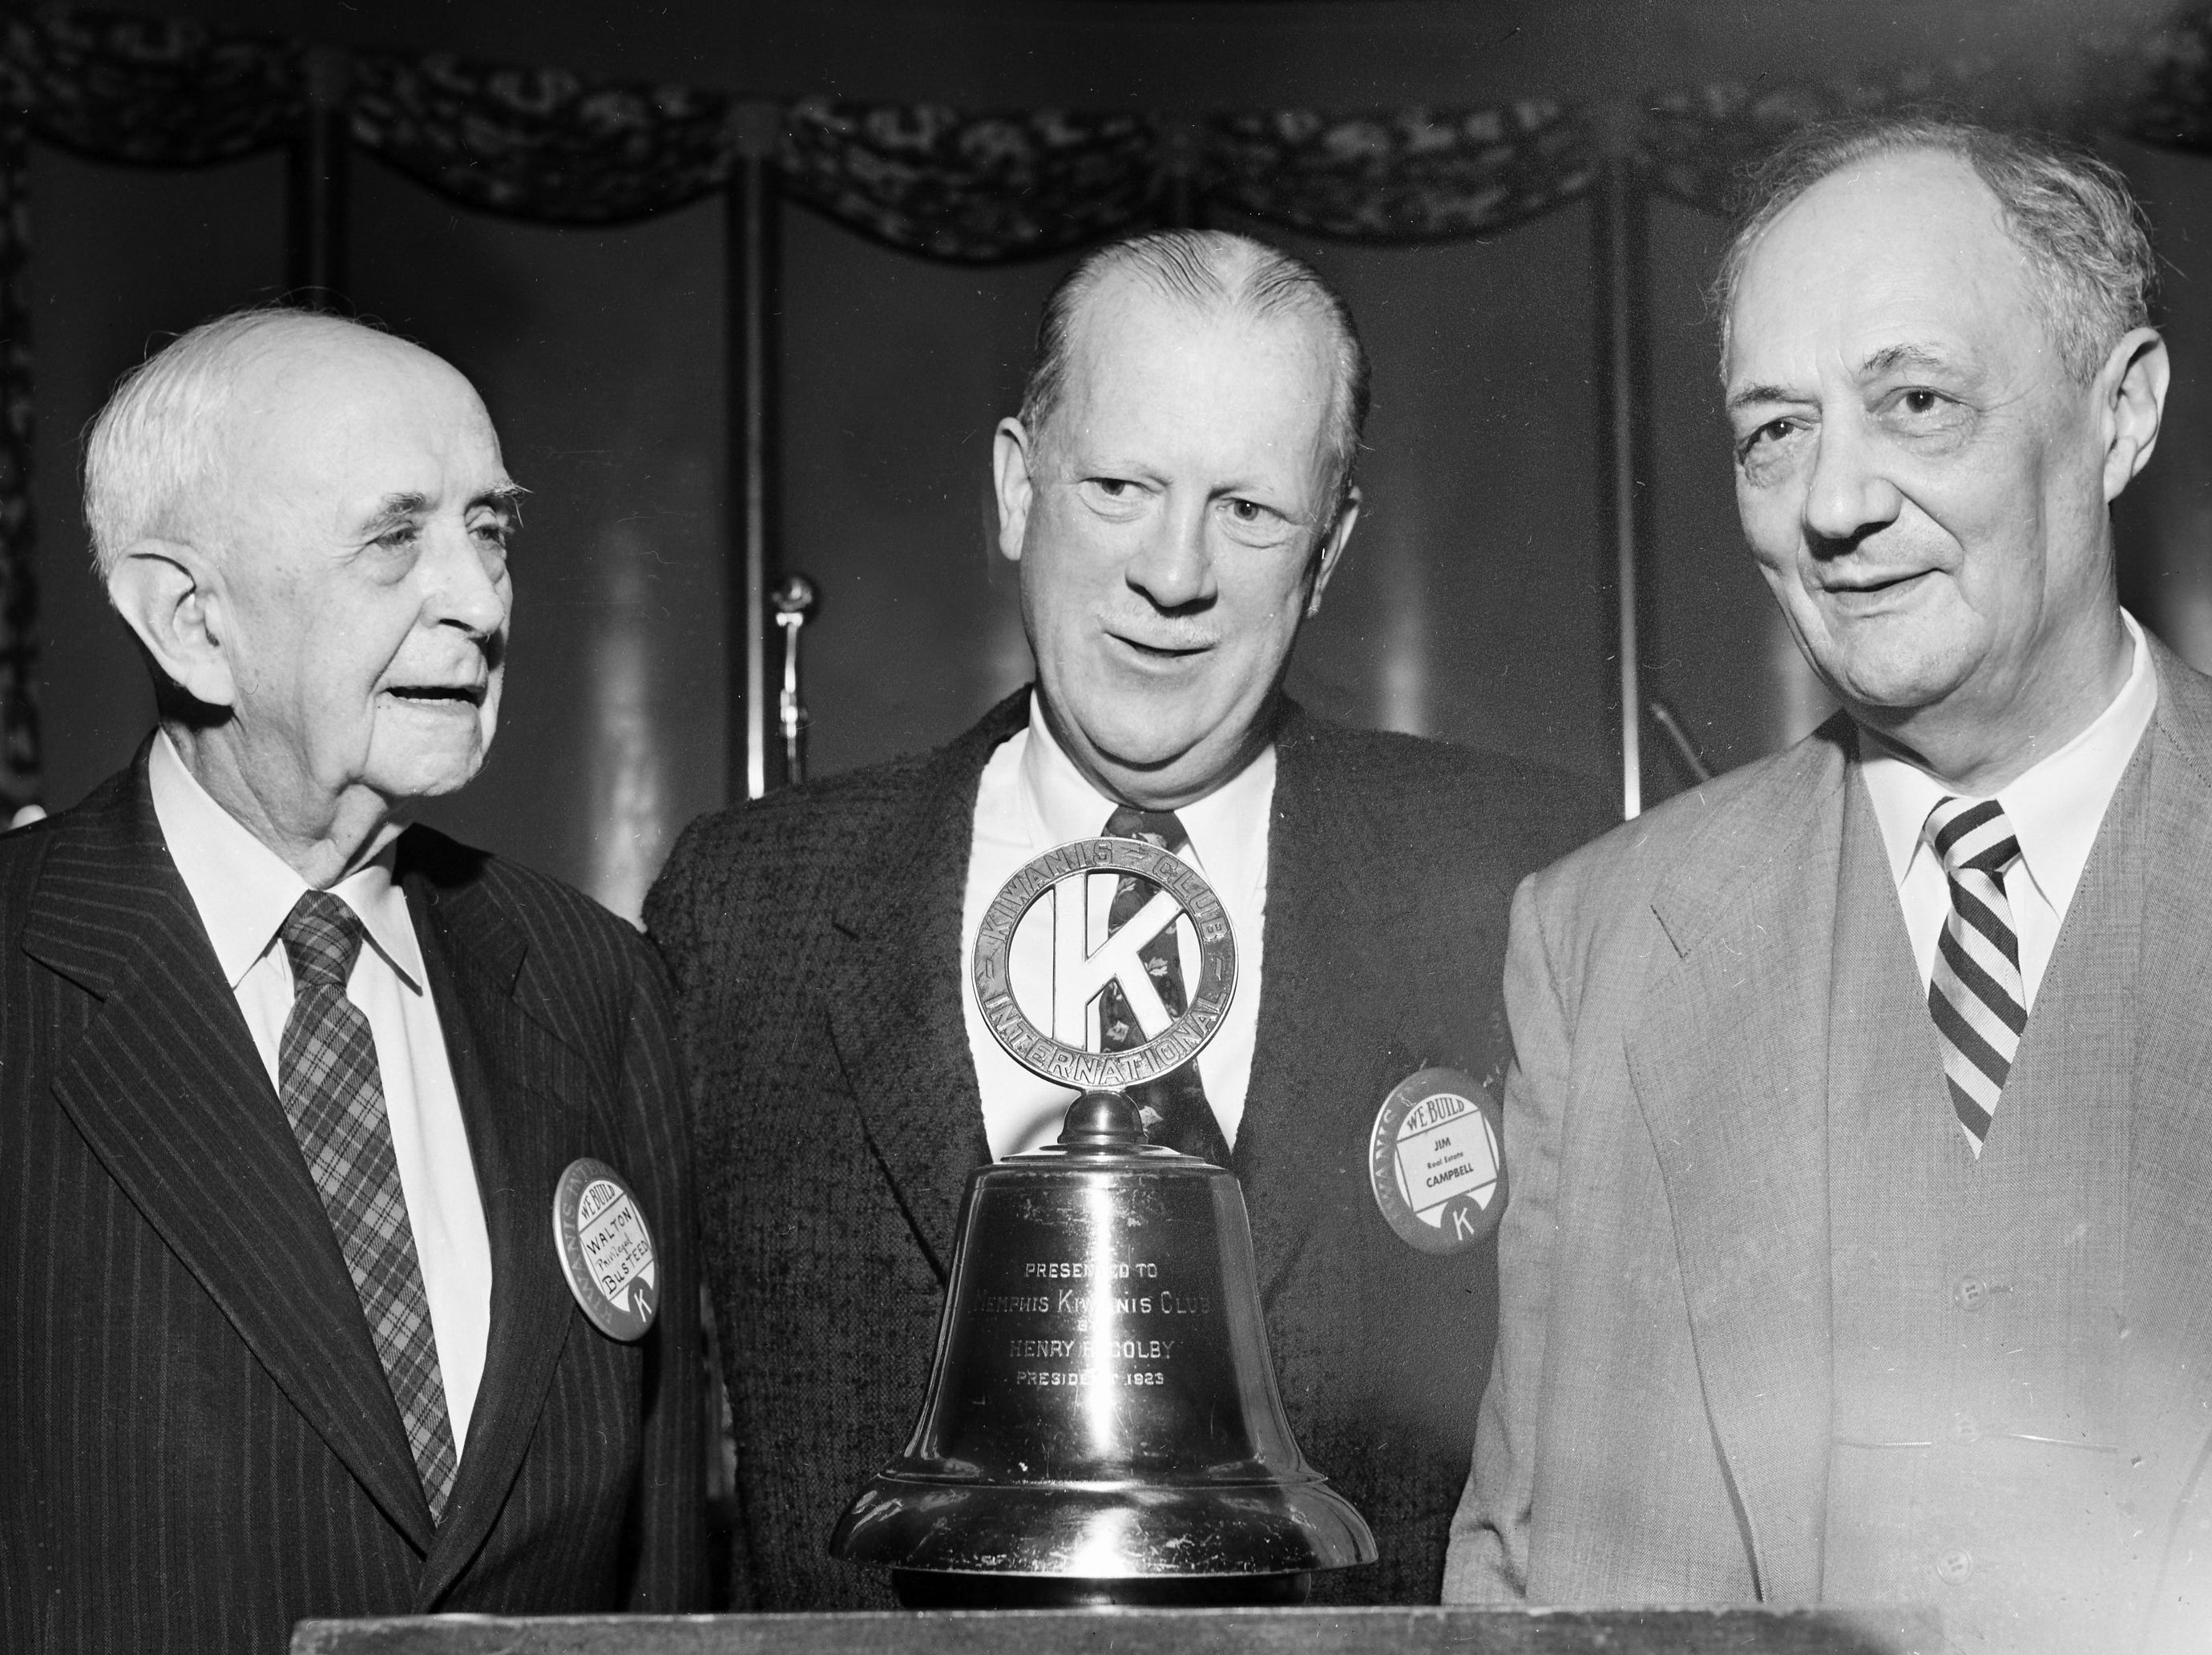 Among a number of past presidents of the Memphis Kiwanis Club attending a luncheon in January 1956, marking the 41st anniversary of Kiwanis International were Lee Winchester Sr. (Right), who served as first president in 1918; W. M. Busteed (Left) president in 1924, and James Campbell, the club's president this year.